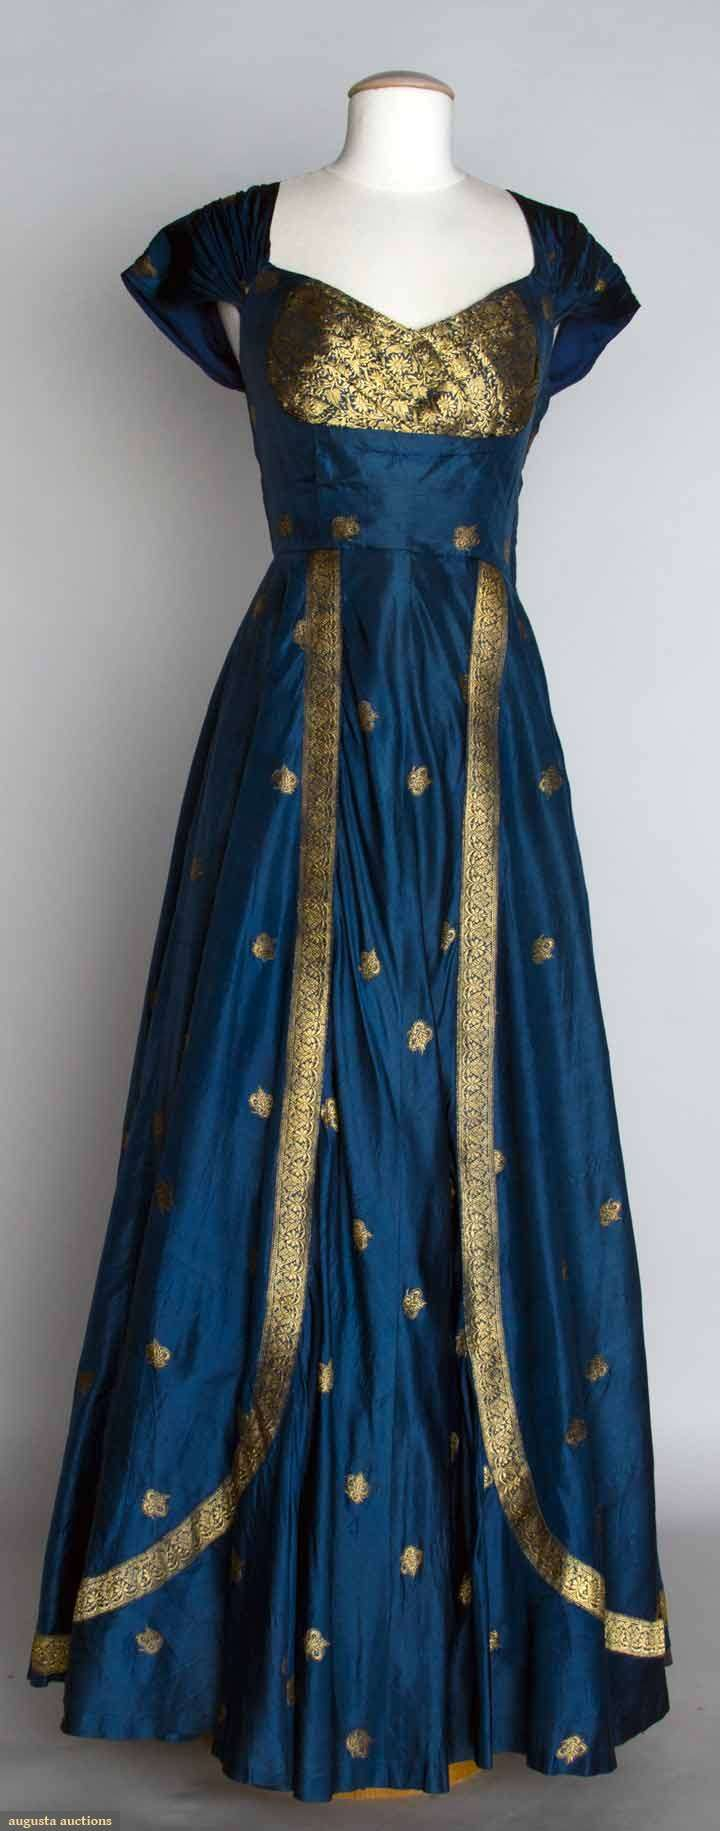 1950's Silk Taffeta with Gold Brocade Dress - I LOVE blue and gold together. It's such a classic, elegant combination.